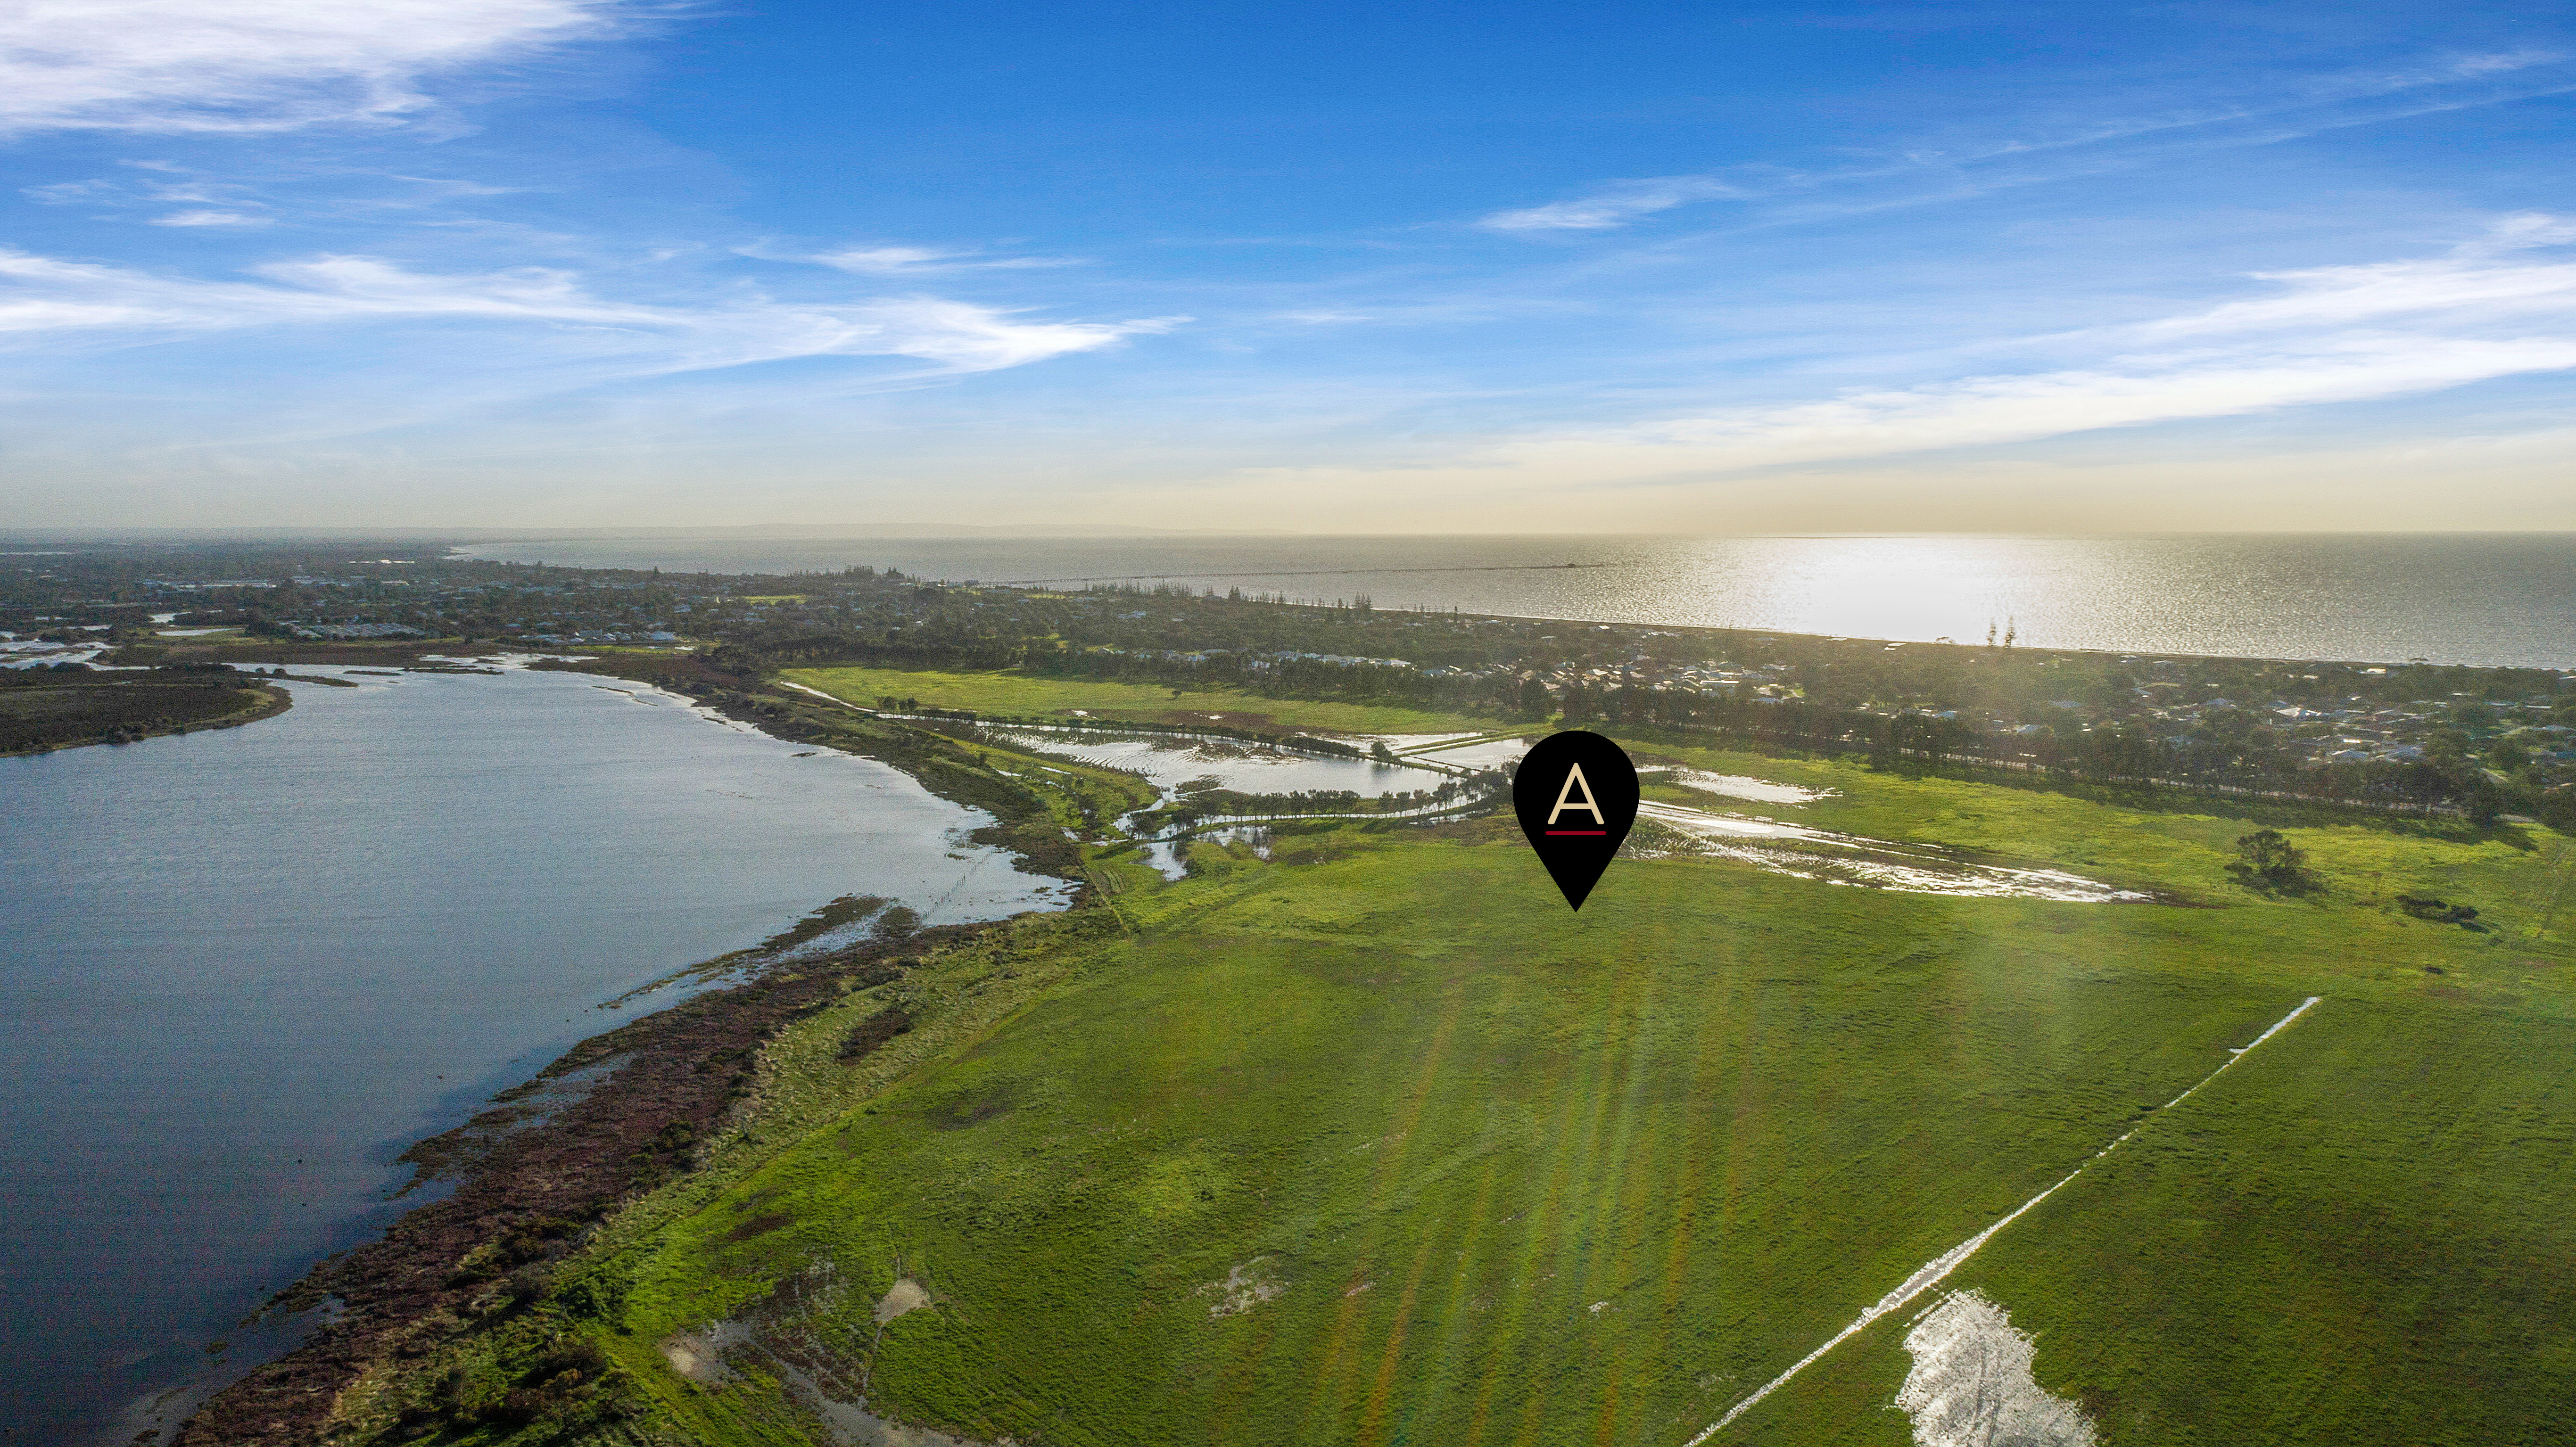 Lot 7 Layman Road Geographe - Other For Sale - 22338507 - Acton Southwest